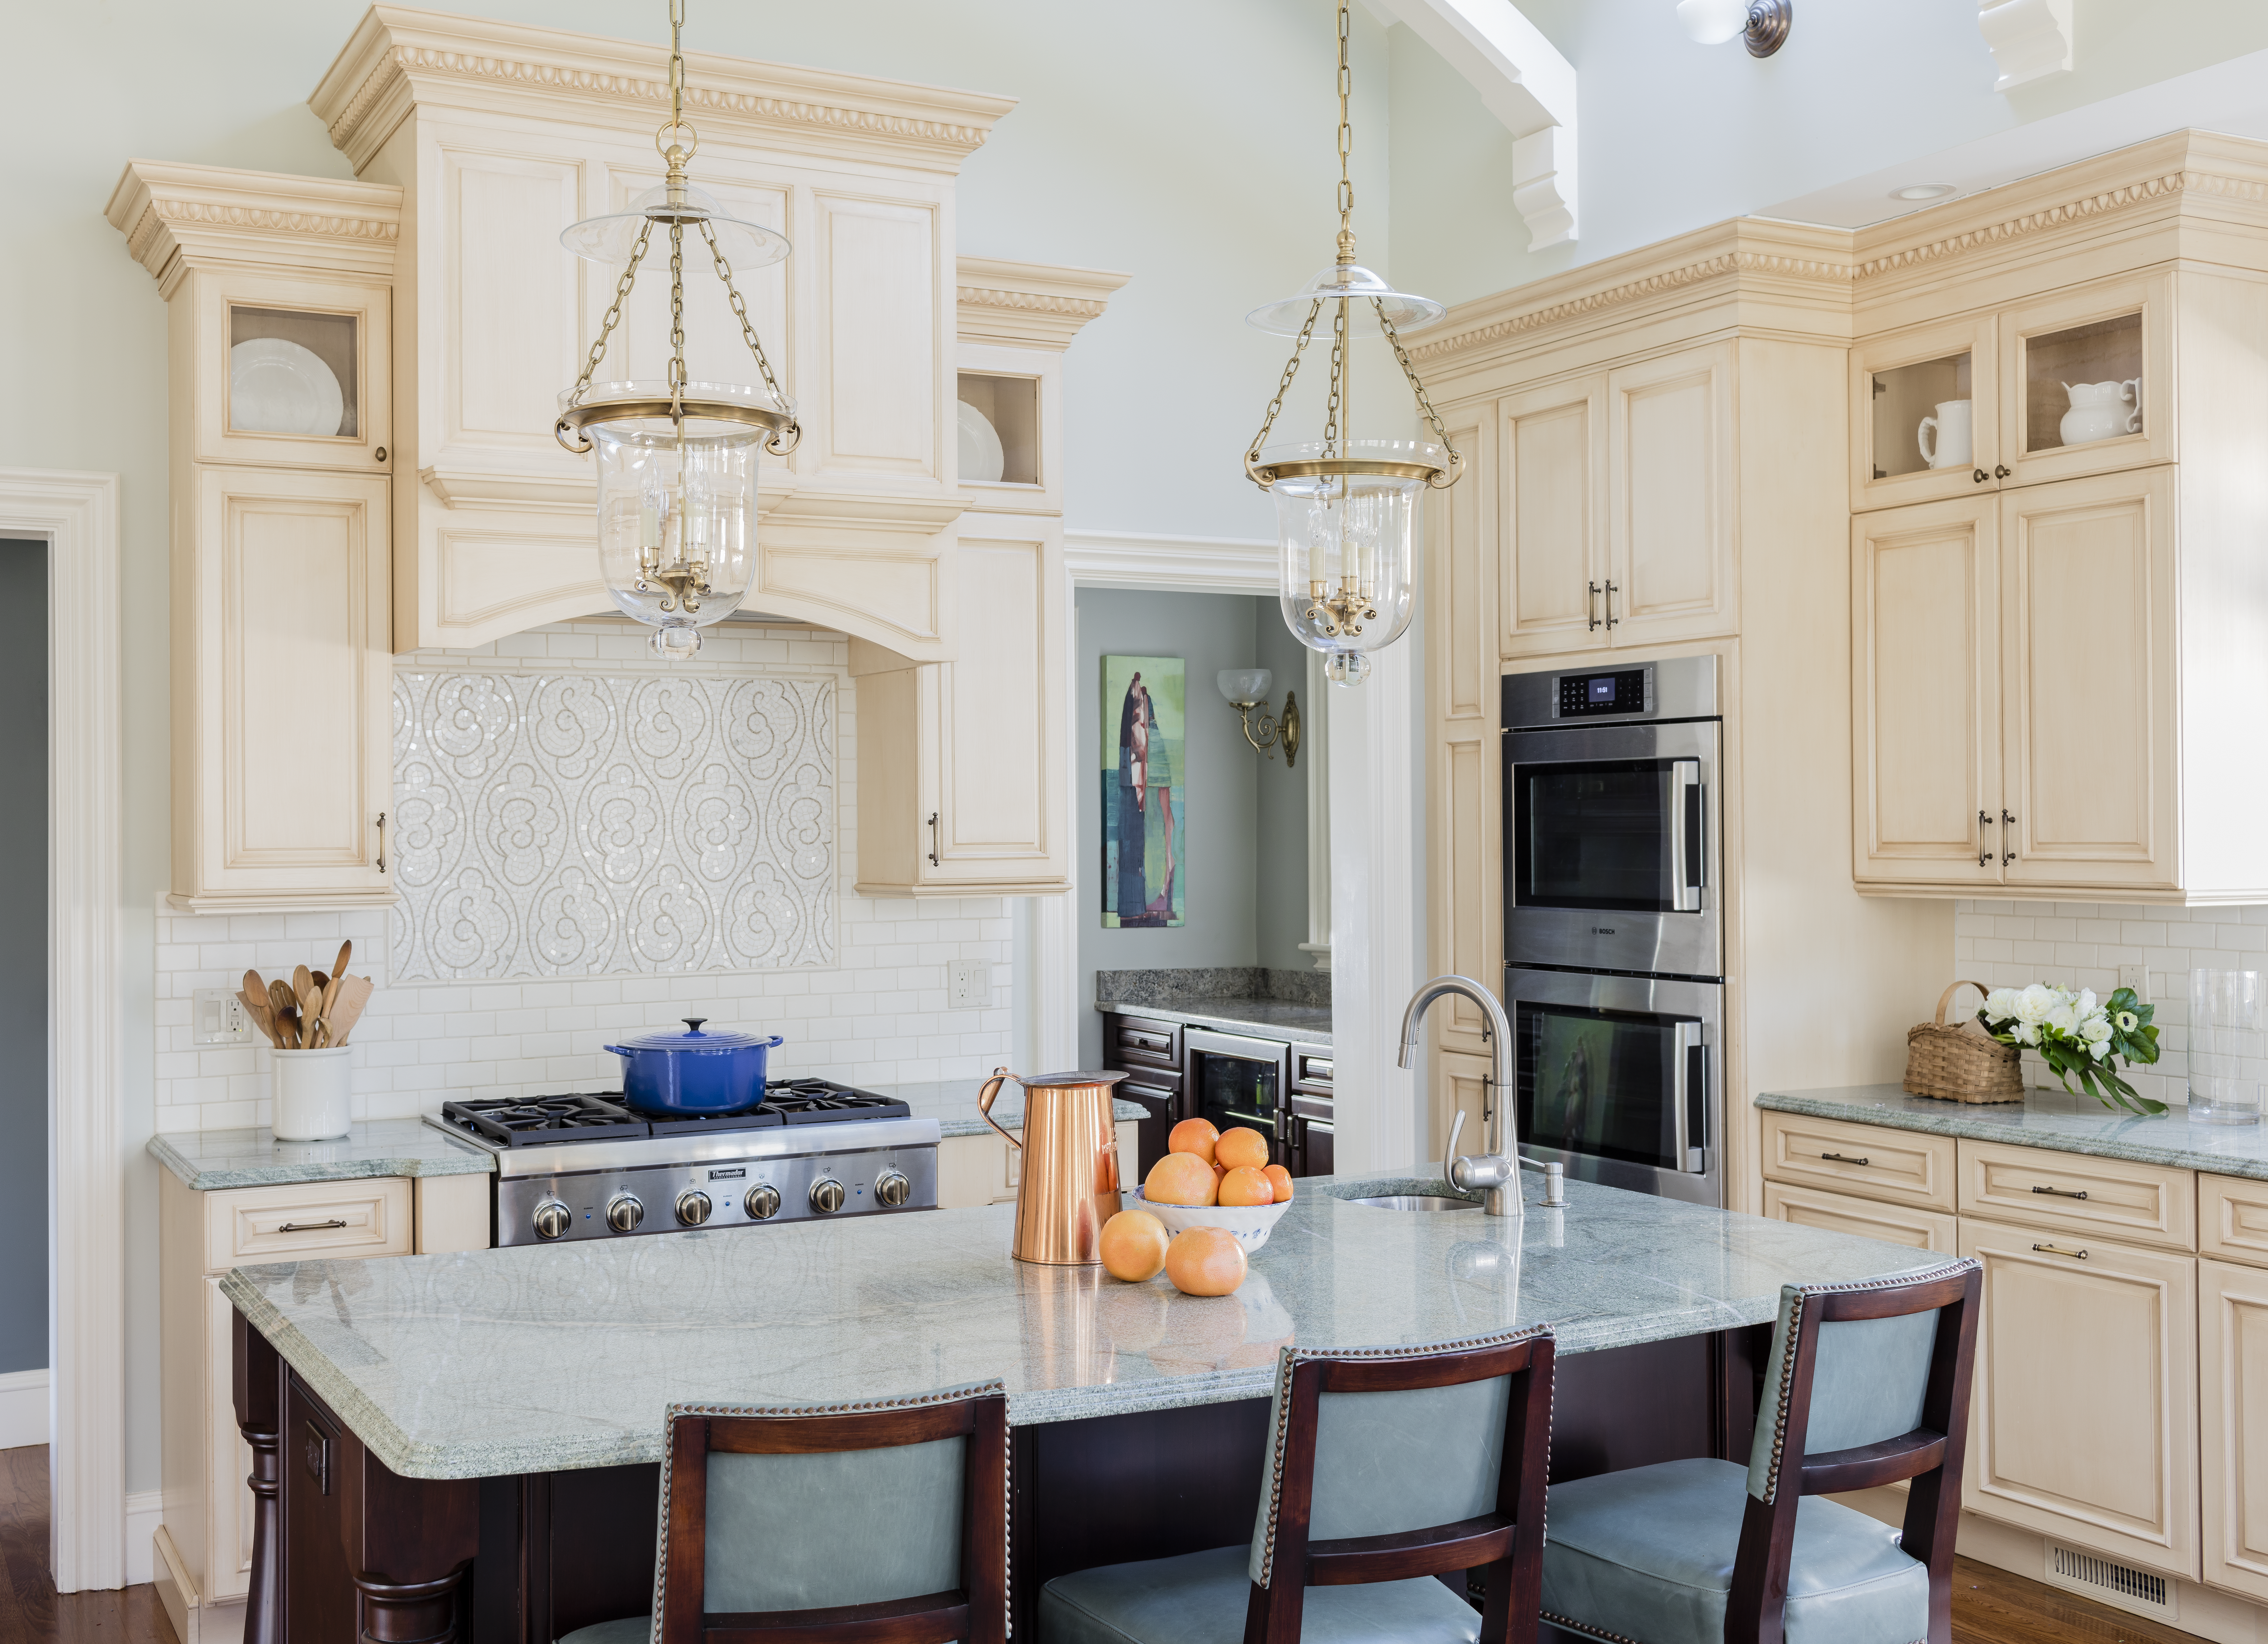 27 Kitchens With Statement Hoods   Inspiration   Dering Hall